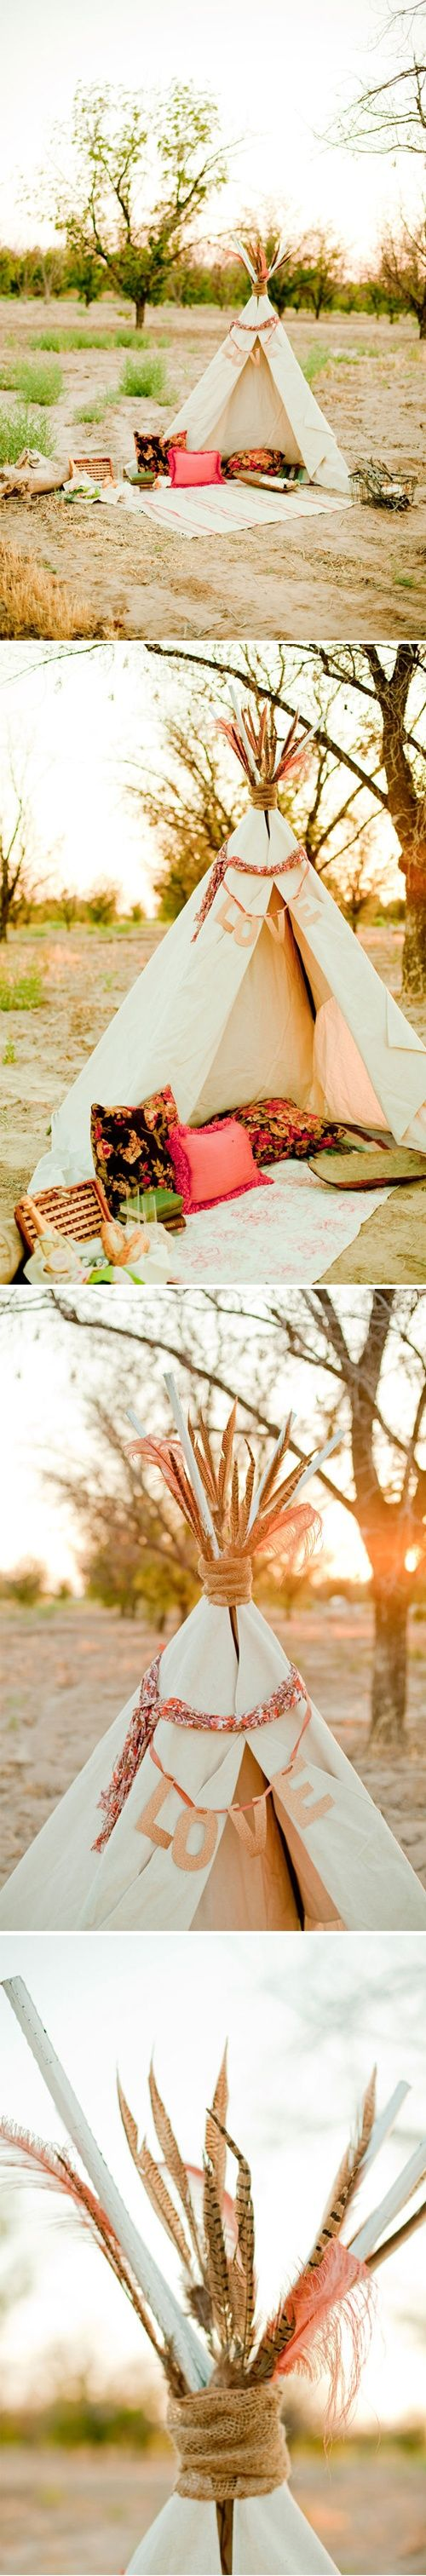 summer to do: spend the night in an awesome teepee with my favorite person.